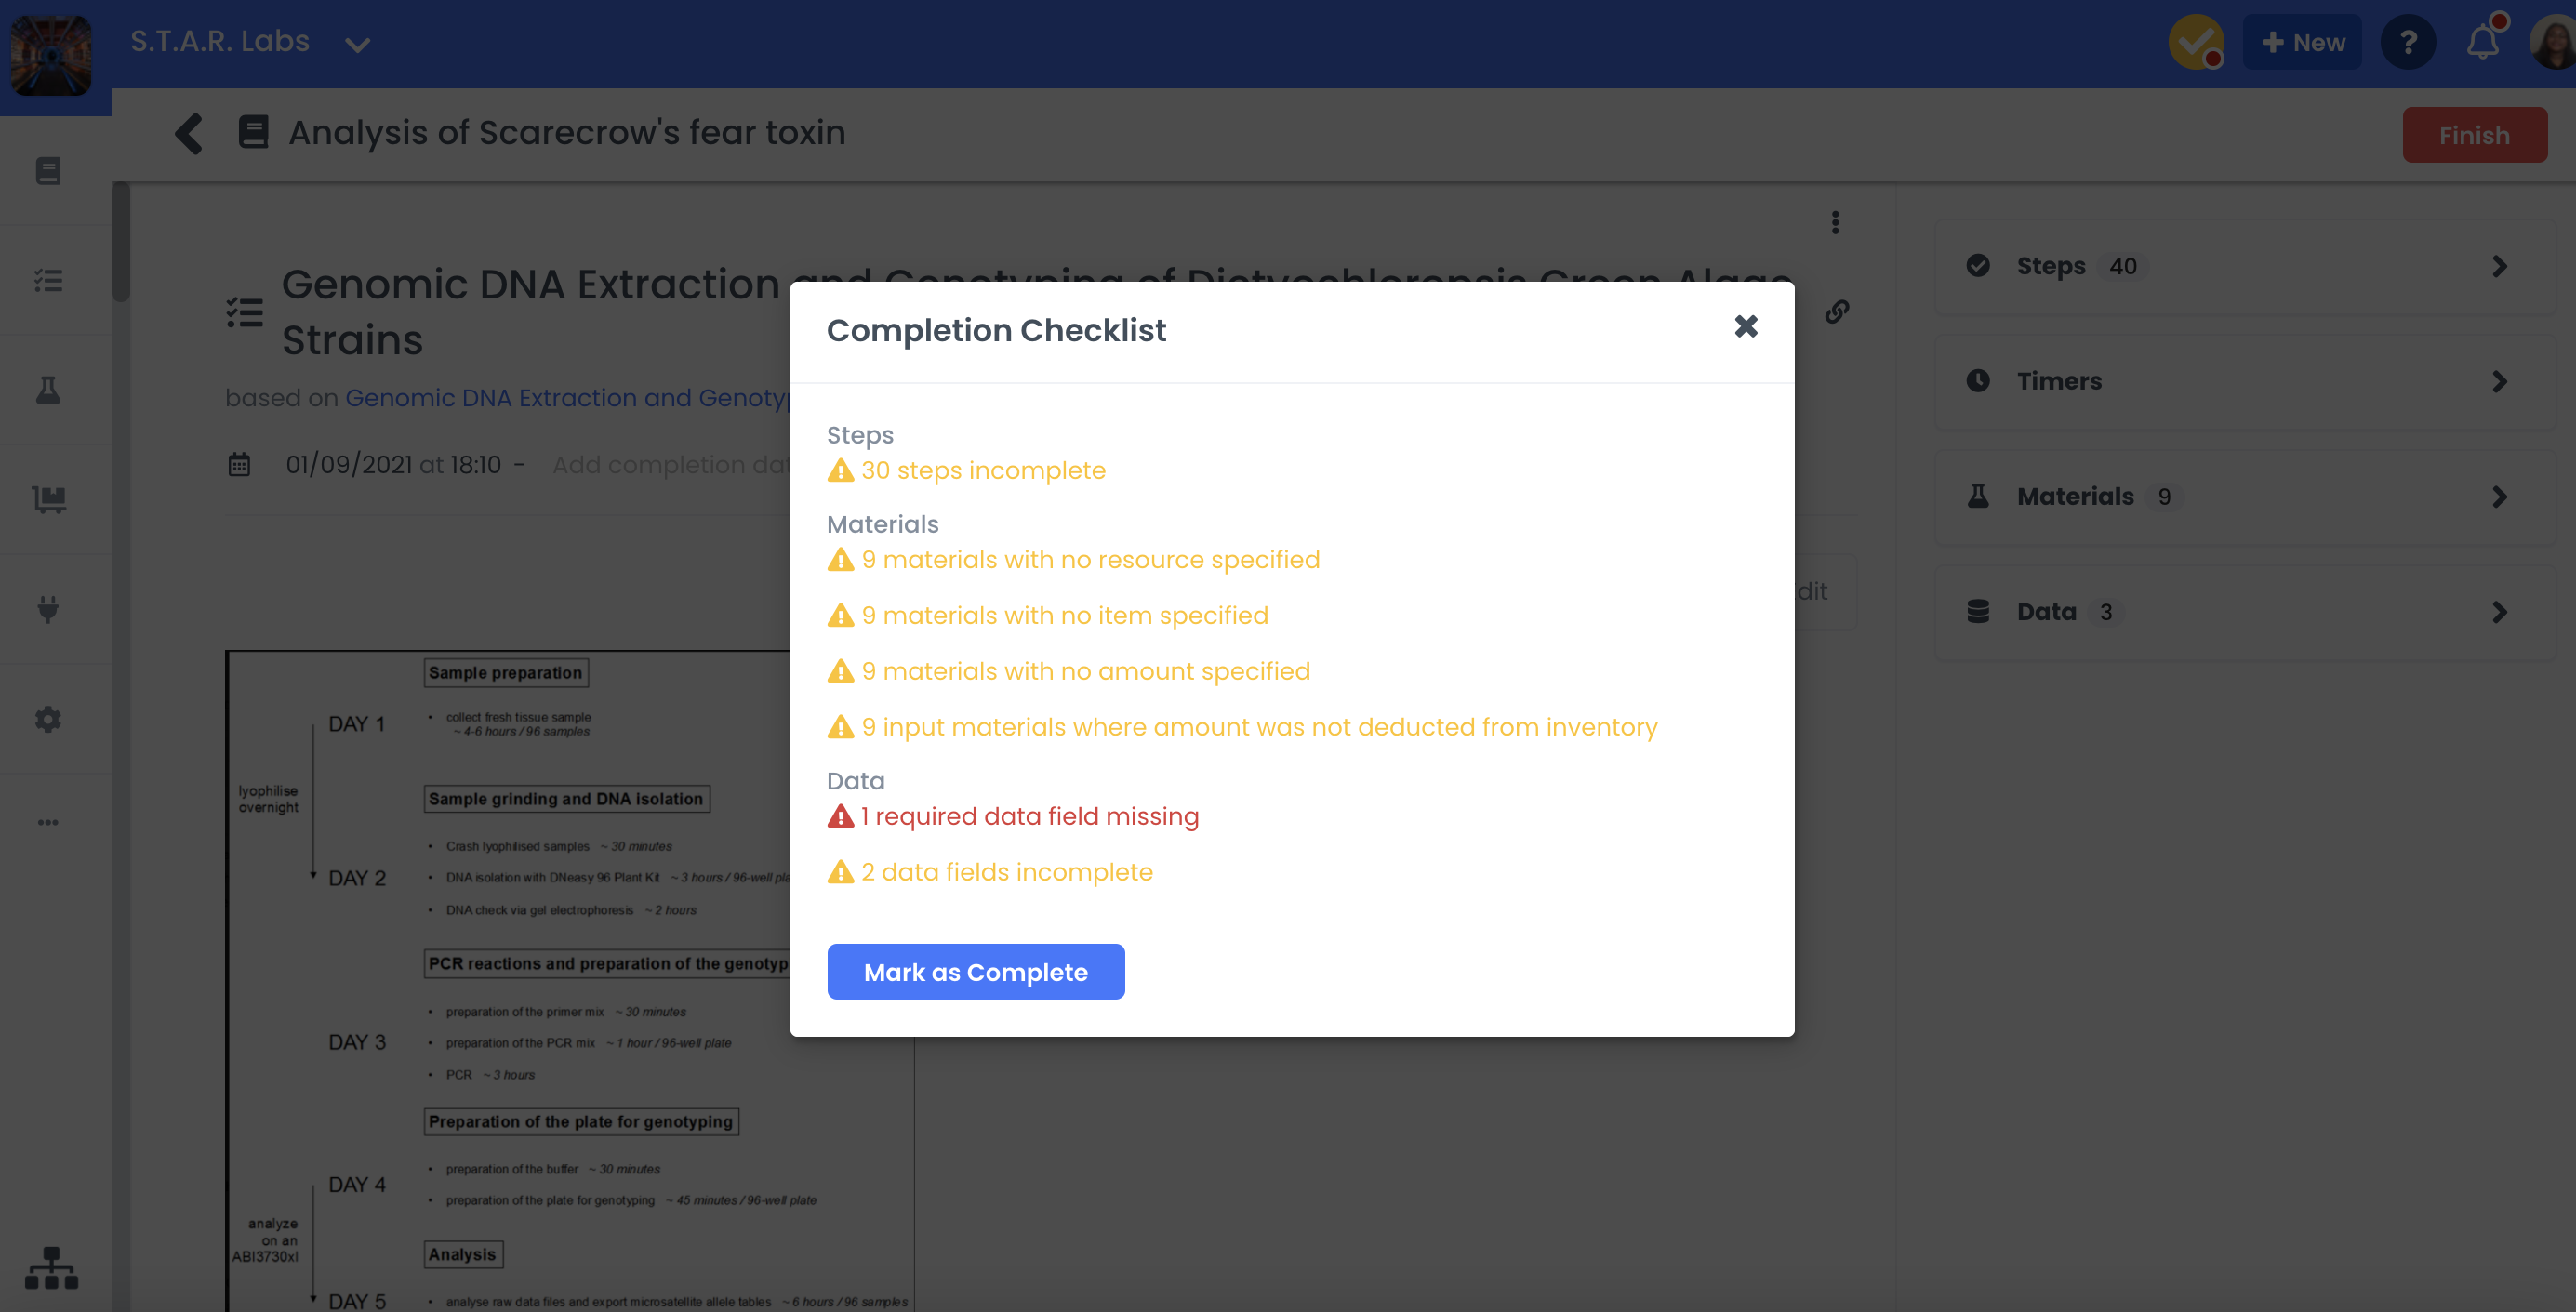 A screenshot showing what the completion checklist looks like